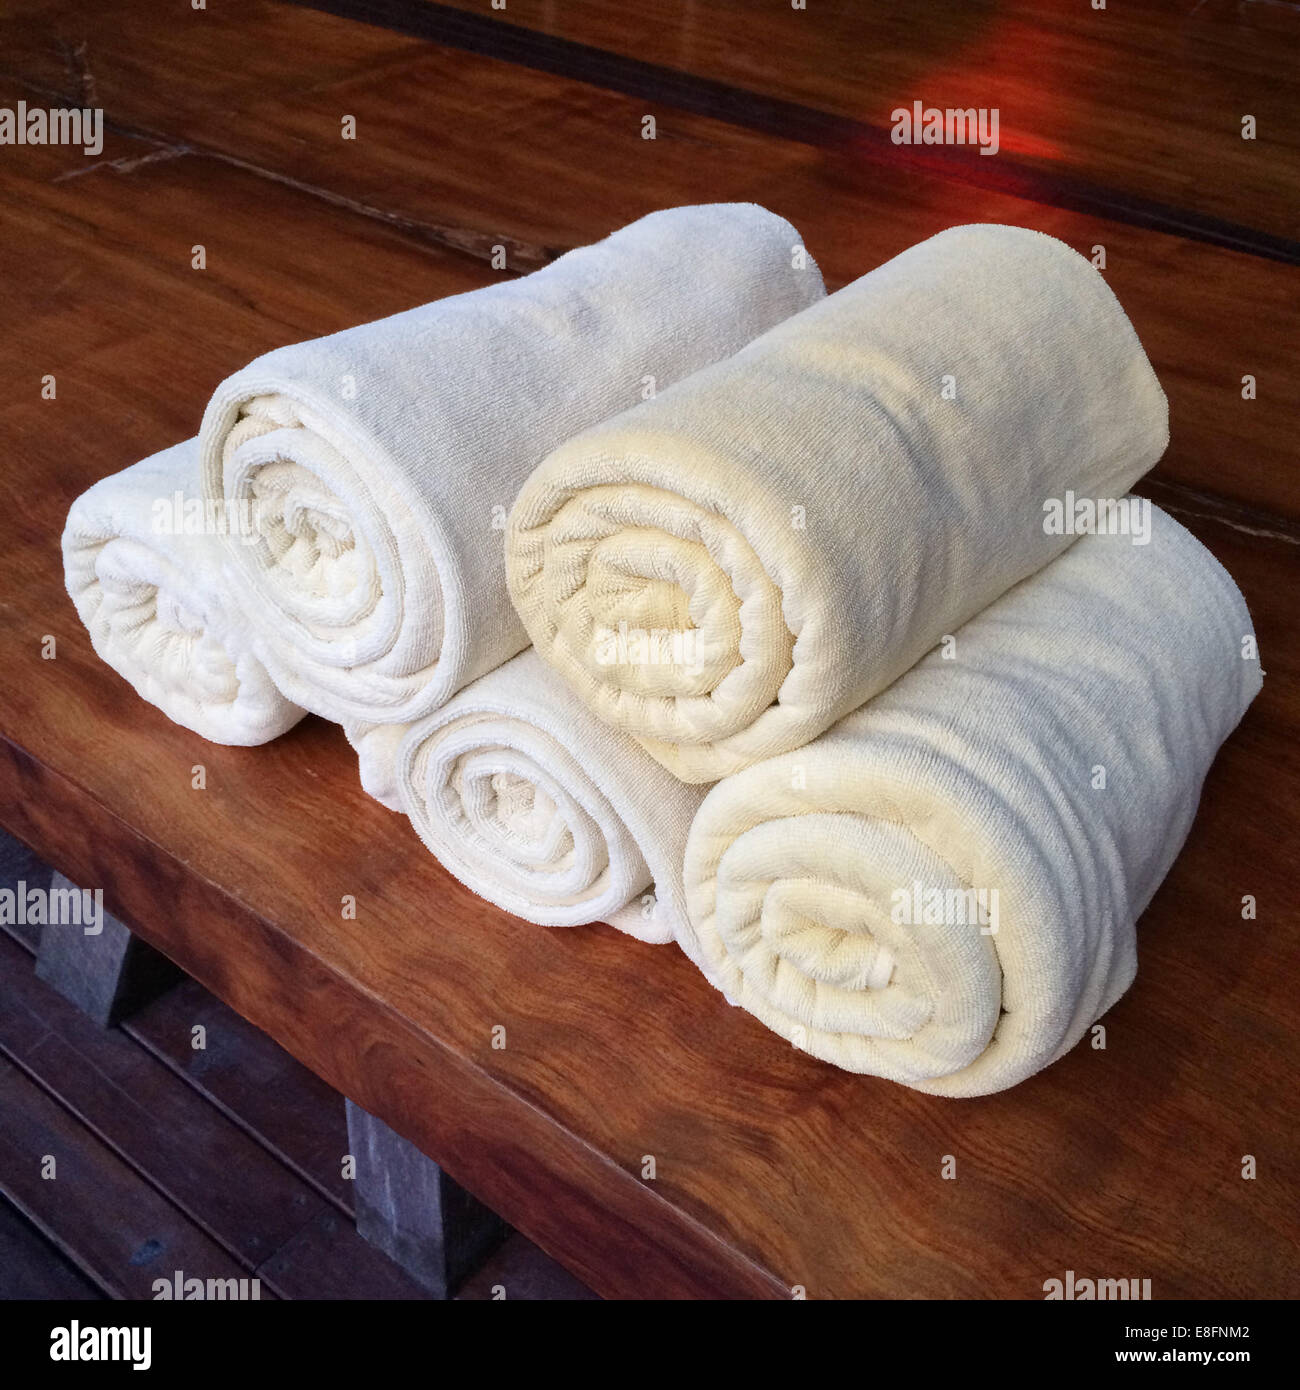 Rolled towels on table - Stock Image